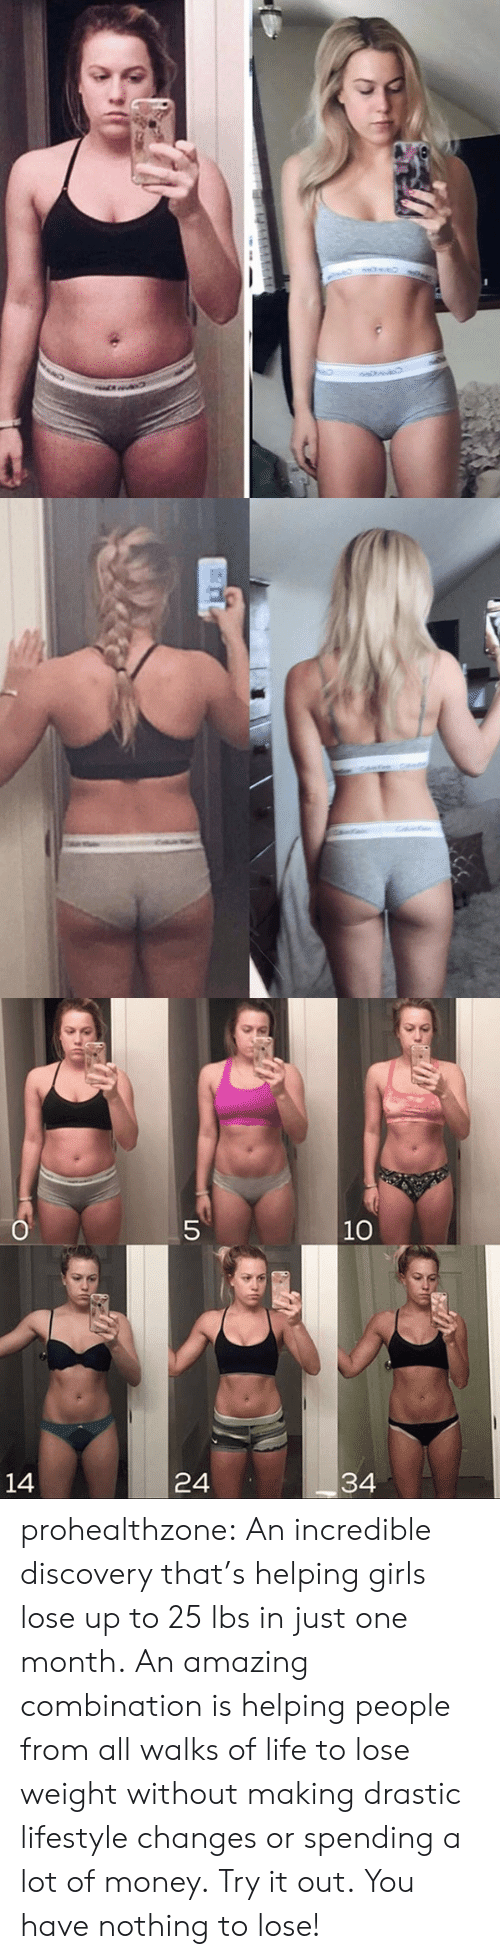 discovery: PhoC   10  34  24  14  Brlly  LD prohealthzone: An incredible discovery that's helping girls lose up to 25 lbs in just one month.  An amazing combination is helping people from all walks of life to lose weight without making drastic lifestyle changes or spending a lot of money. Try it out. You have nothing to lose!